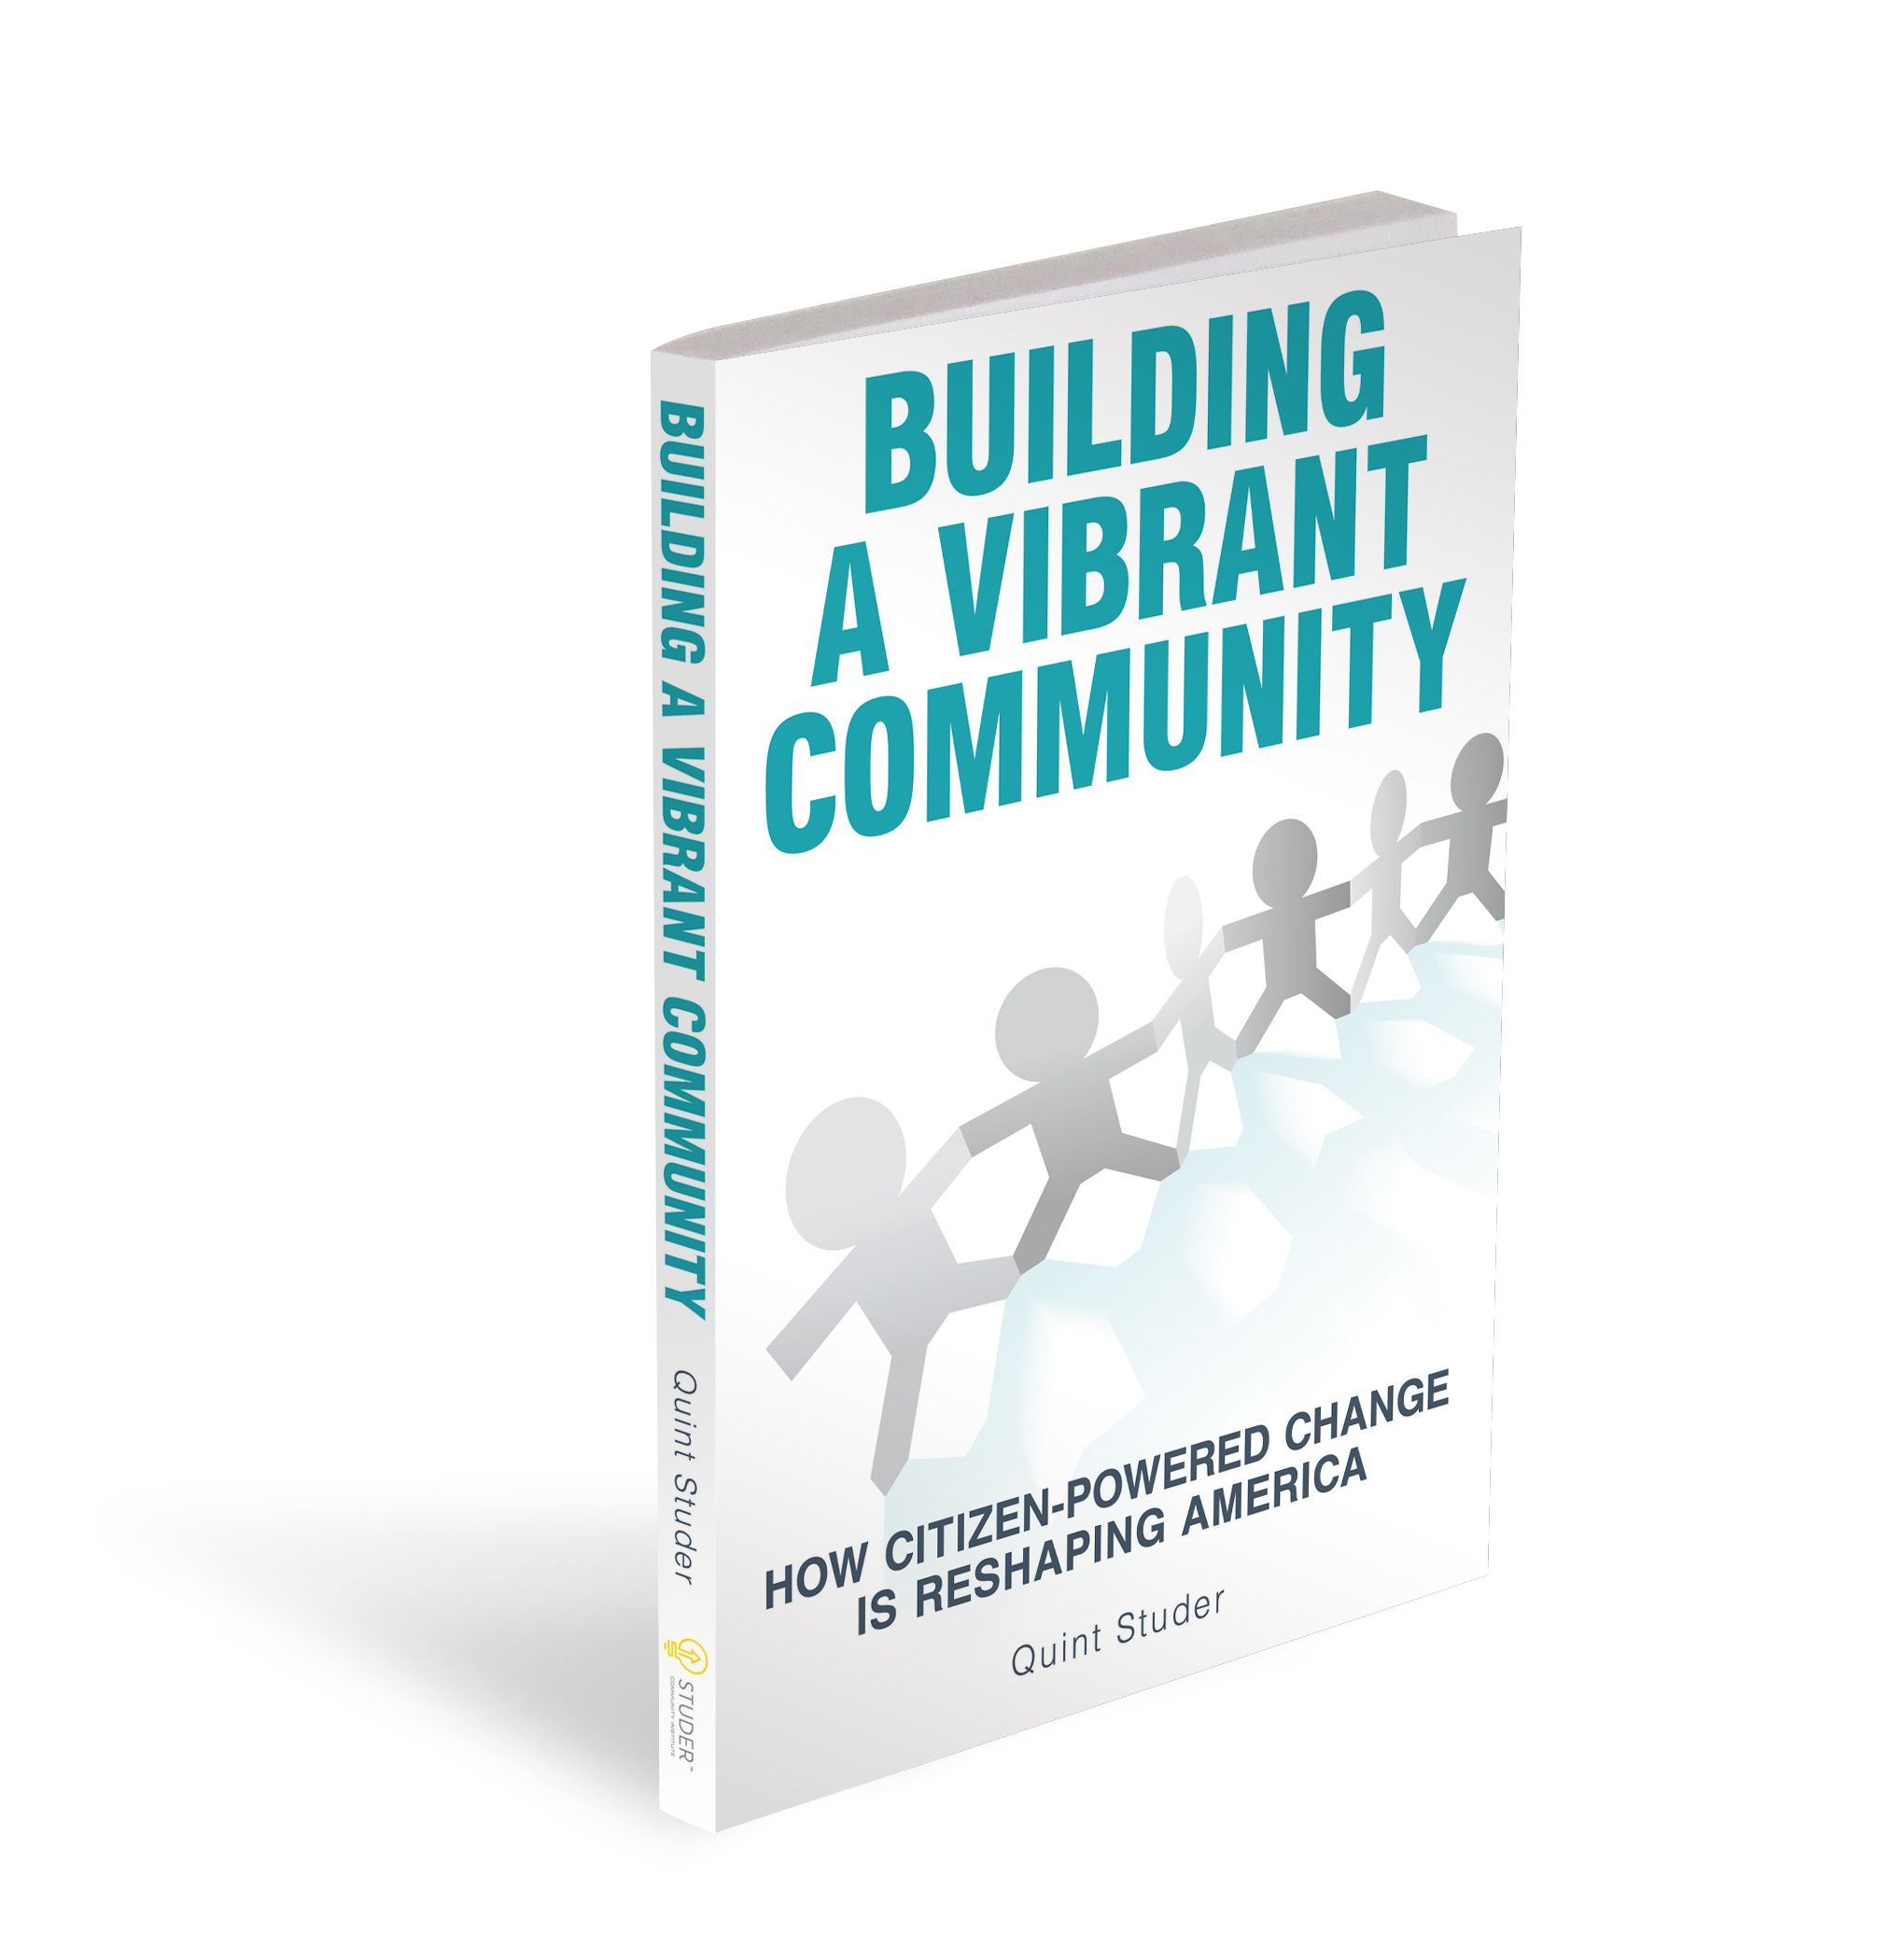 Building A Vibrant Community by Quint Studer book cover